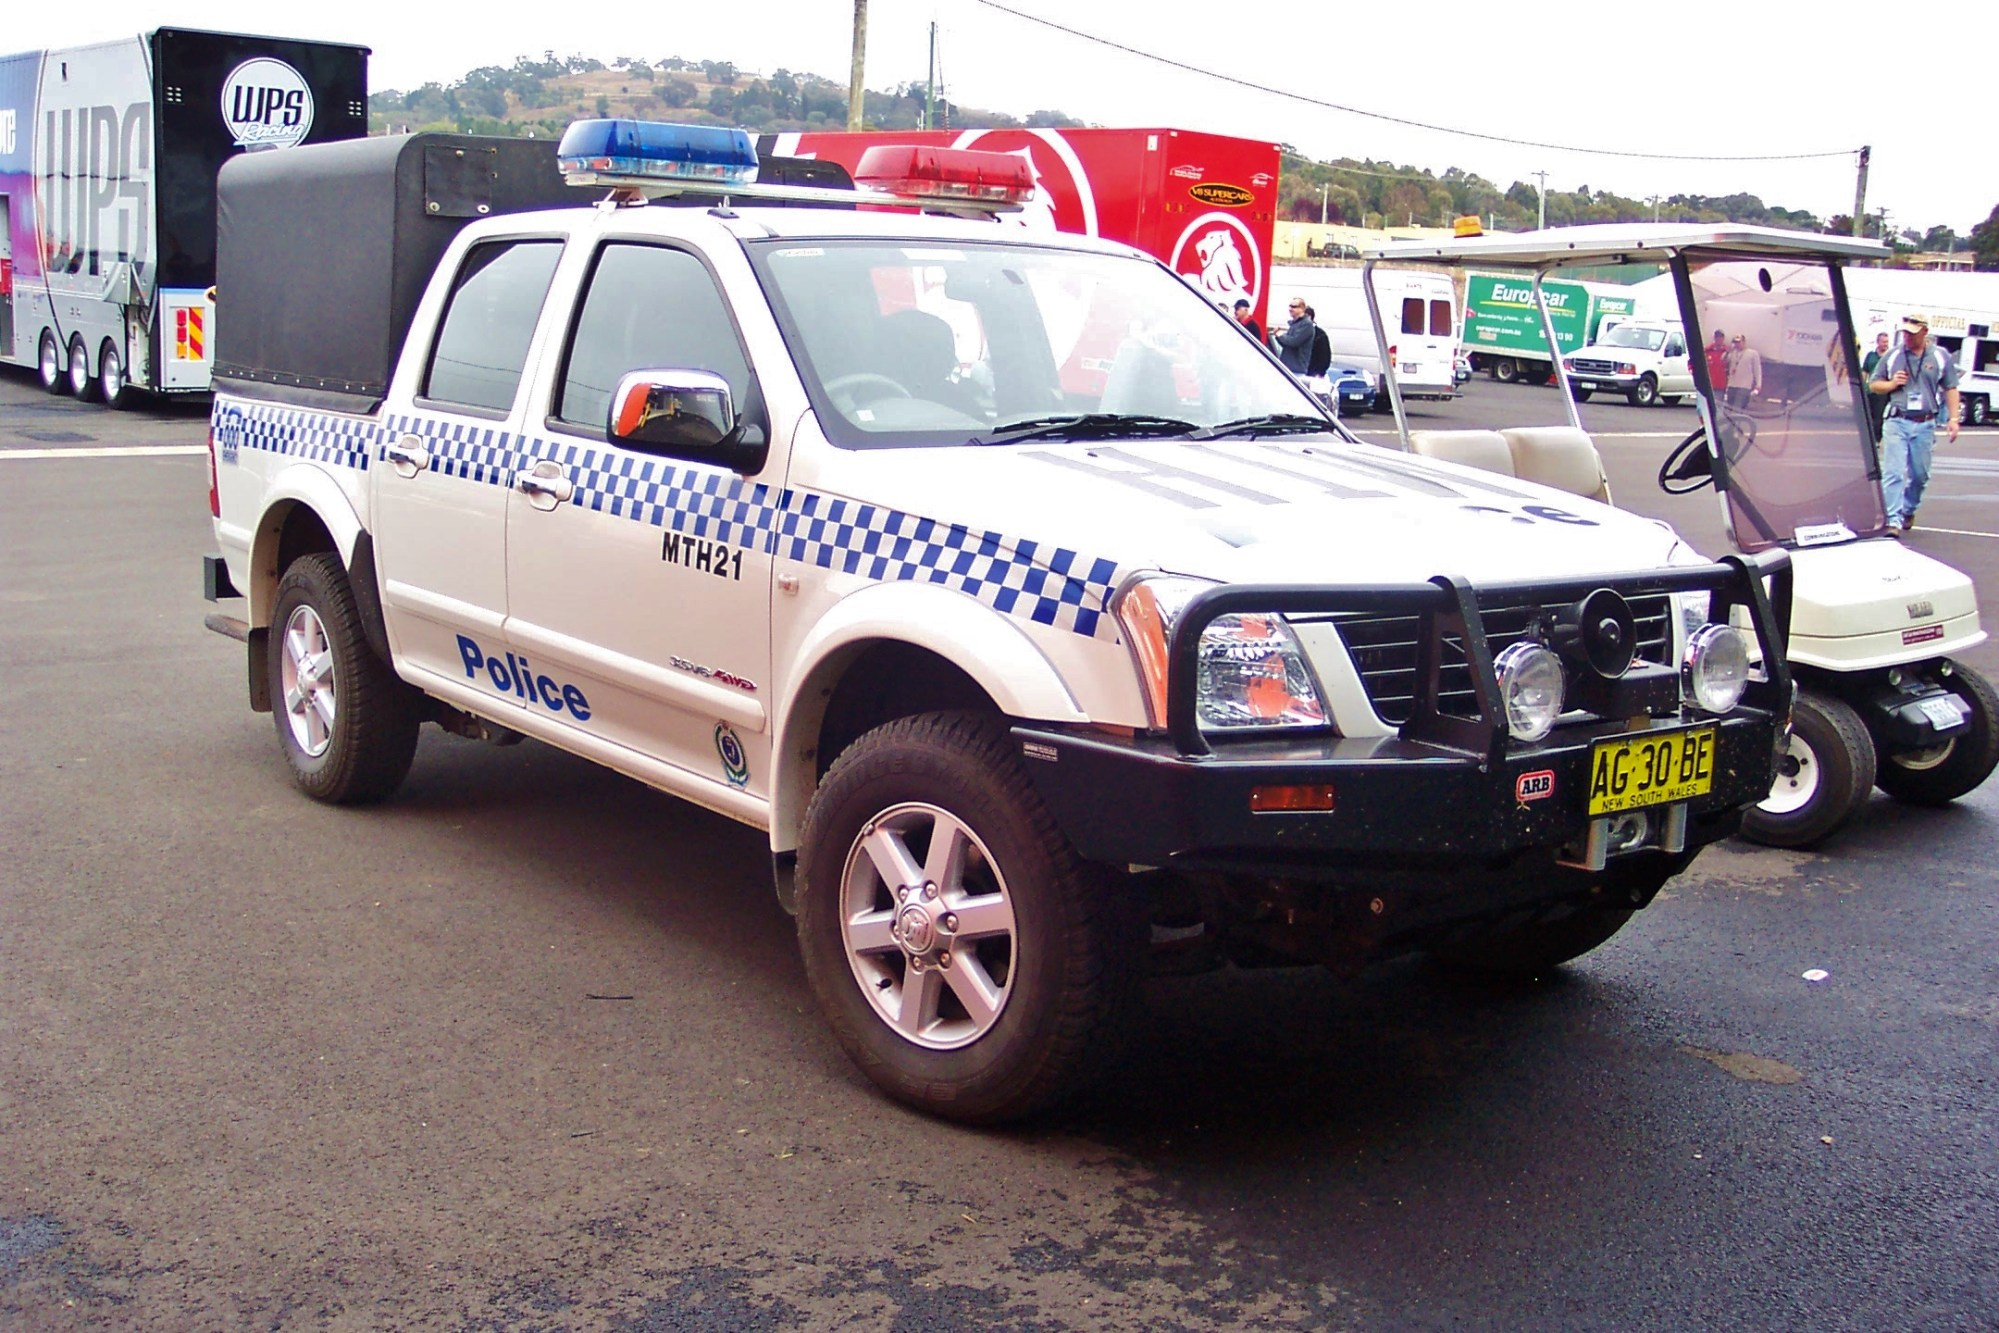 hight resolution of file 2005 holden ra rodeo lt paddy wagon nsw police 5498537804 jpg